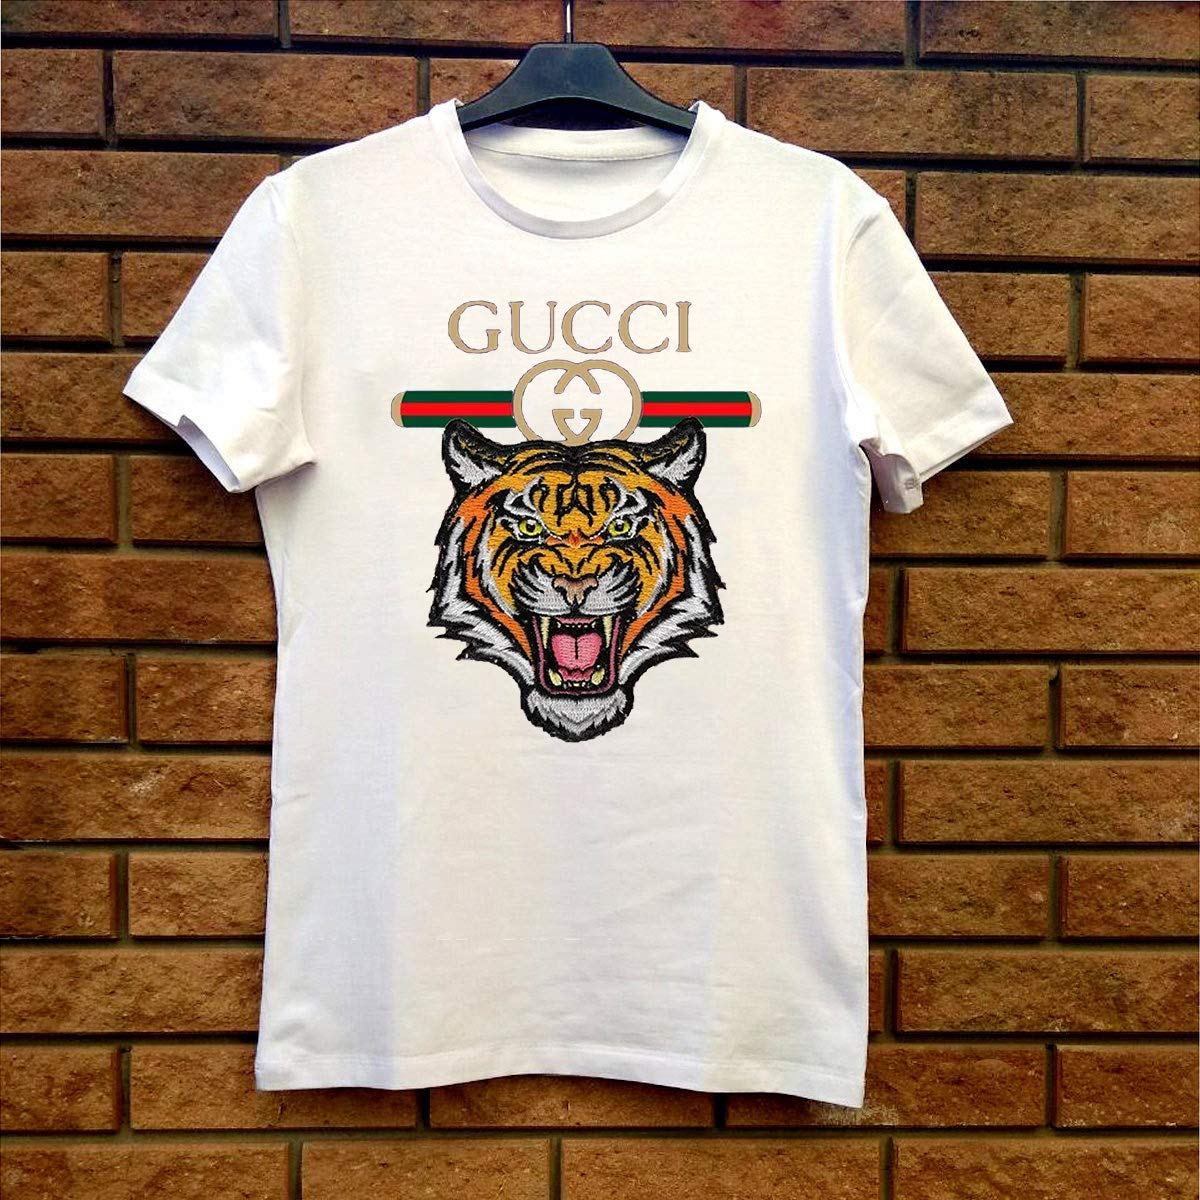 8caac104f Amazon.com: Gucci Vintage Shirt Tiger For Men Women White Shirt: Handmade